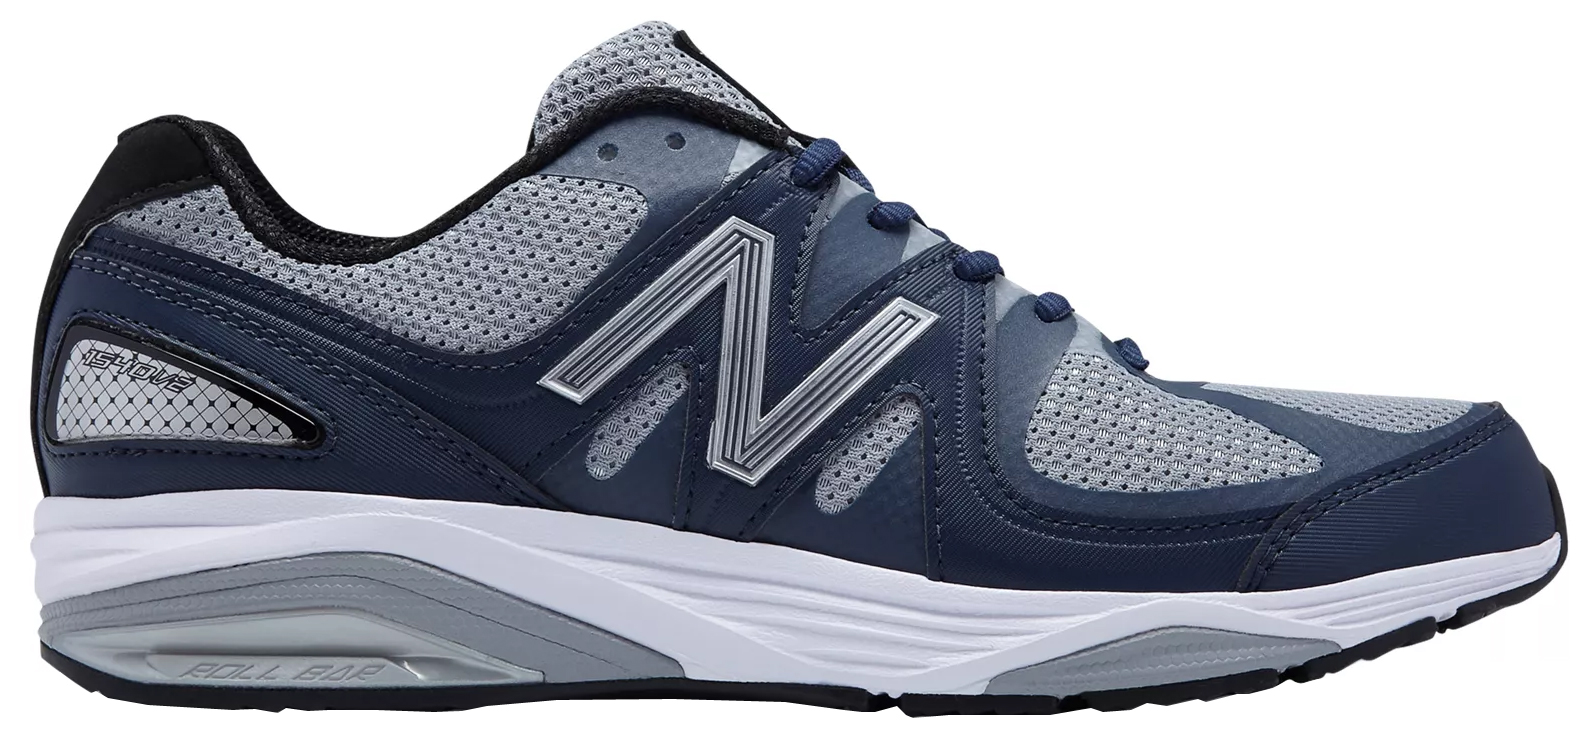 New Balance 860v9 Review | Running Shoes Guru